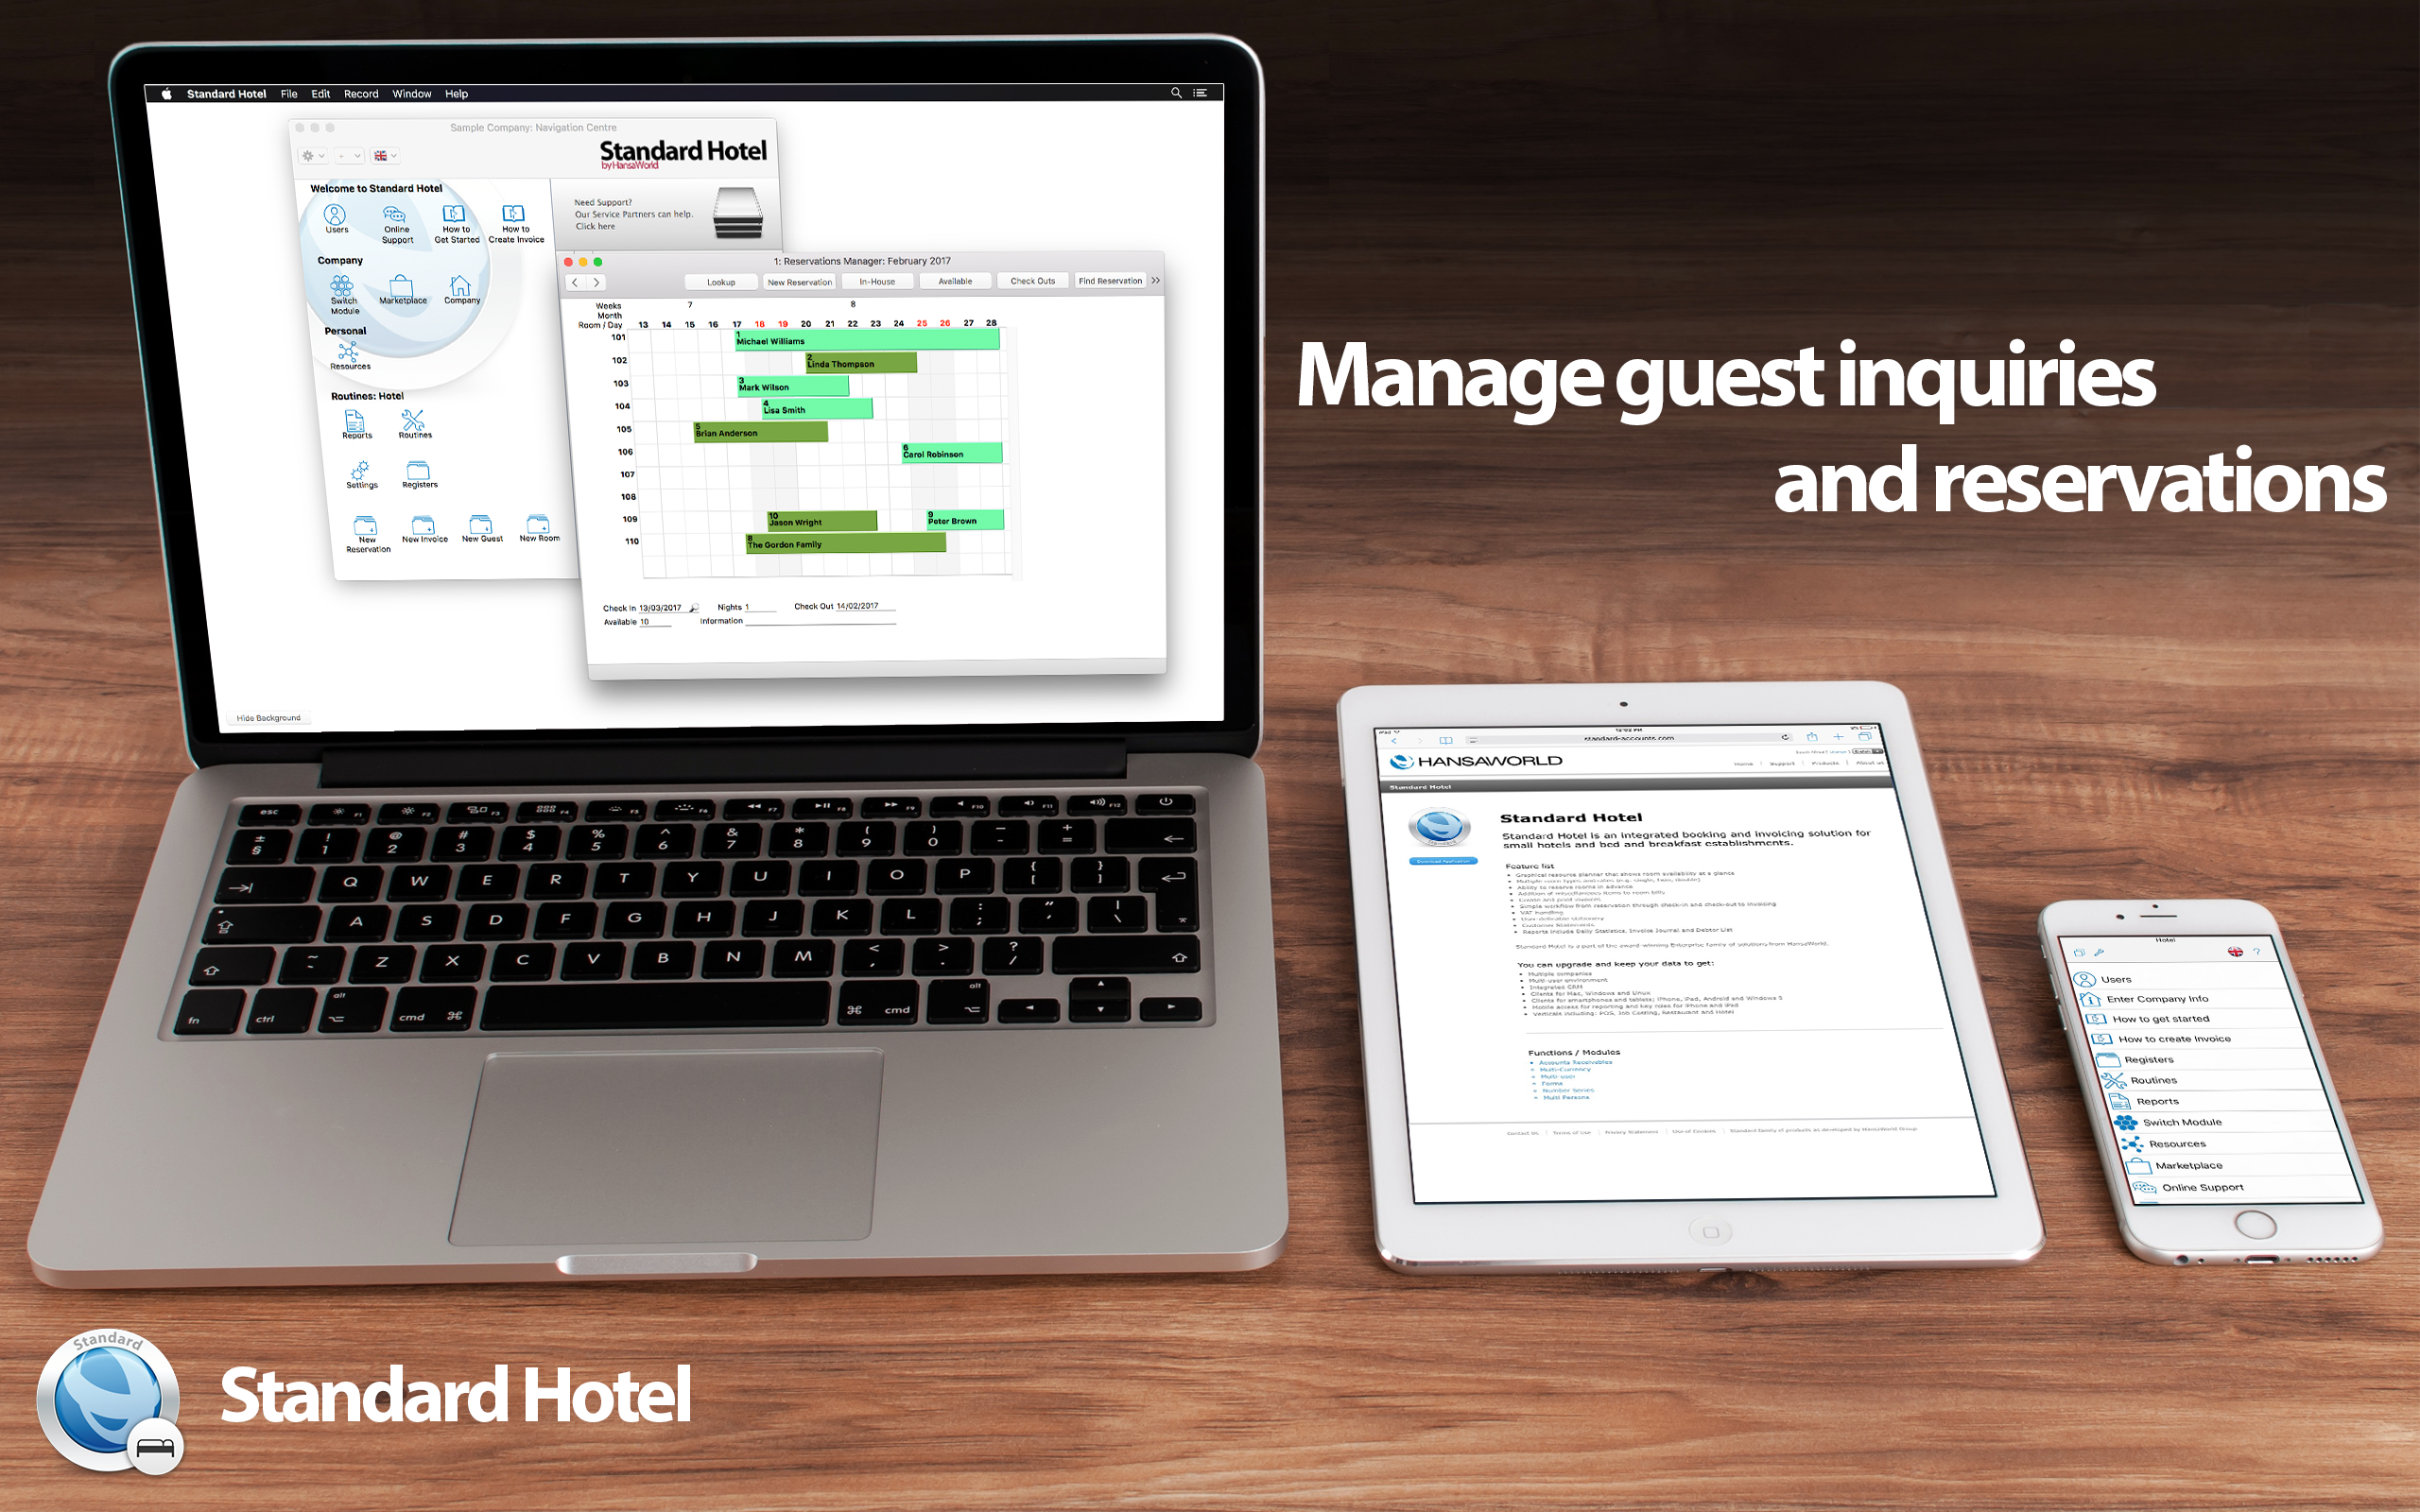 Standard Hotel - Free Hospitality Management [Download]